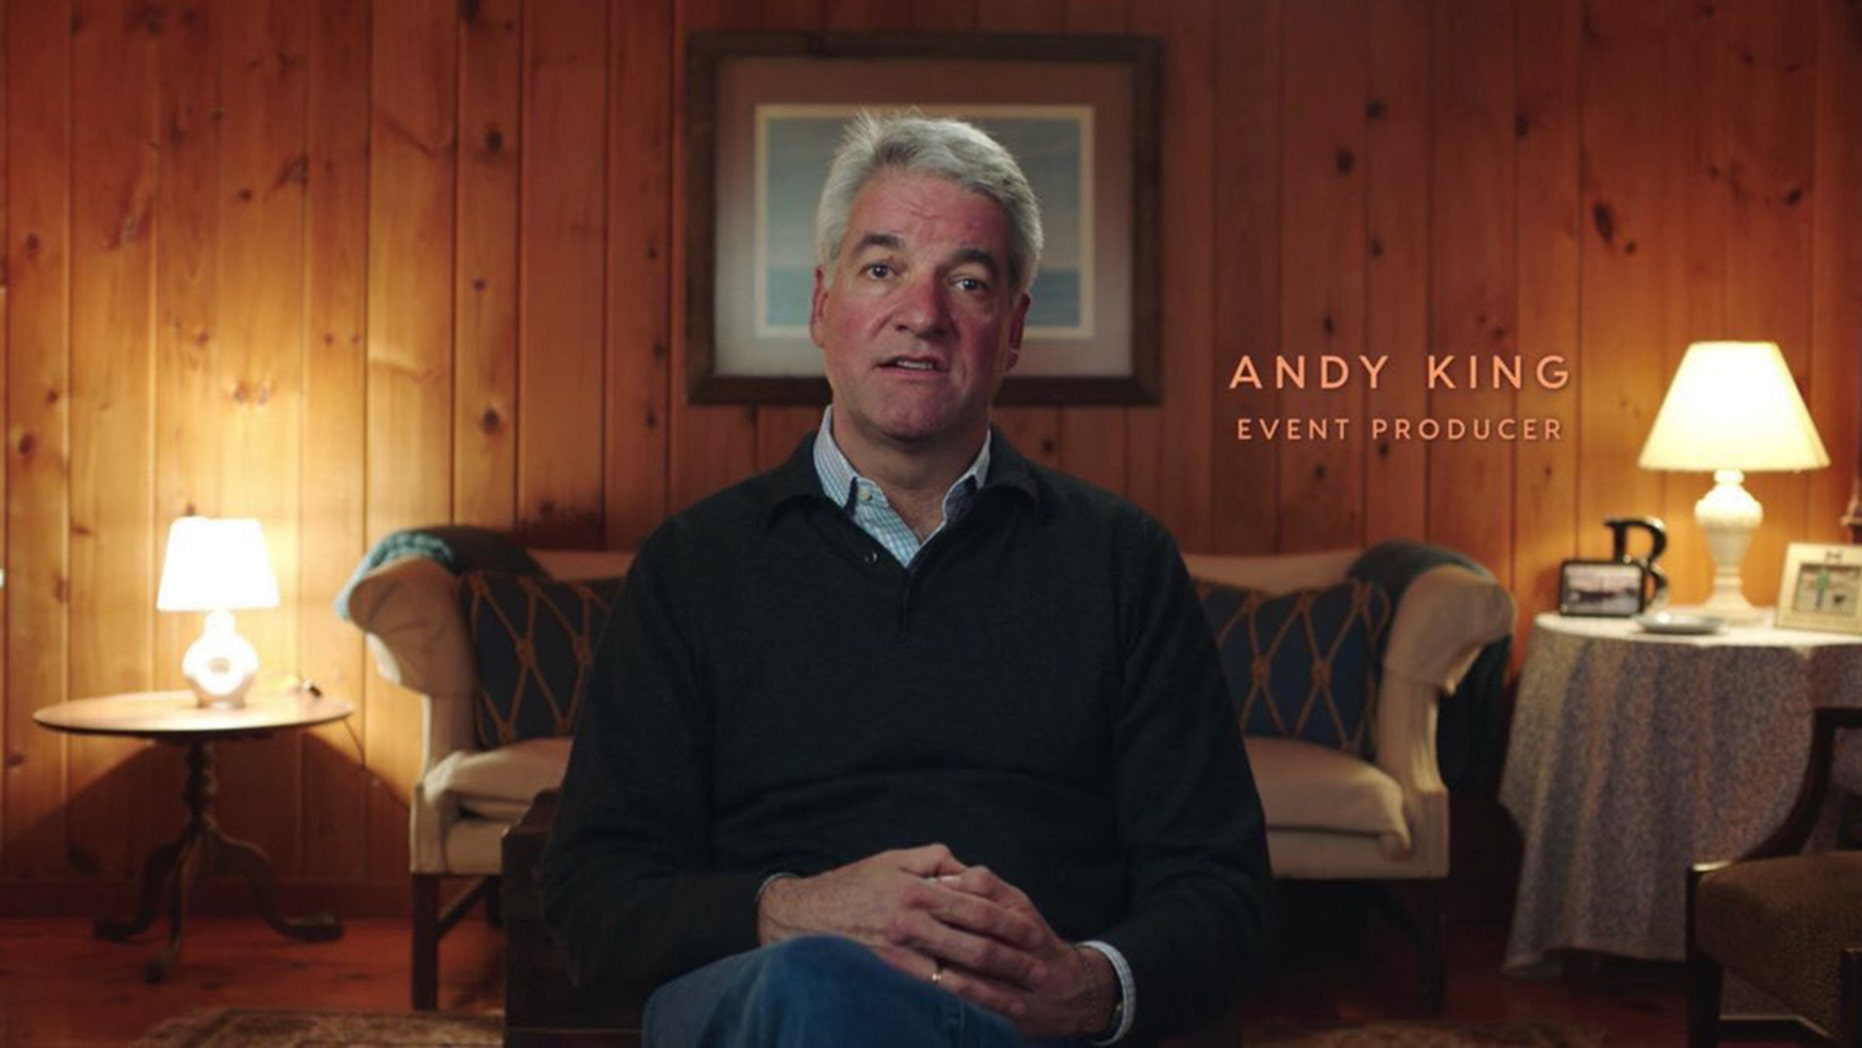 Andy King reacted to his oral sex confession on the Fyre Festival Netflix documentary going viral.